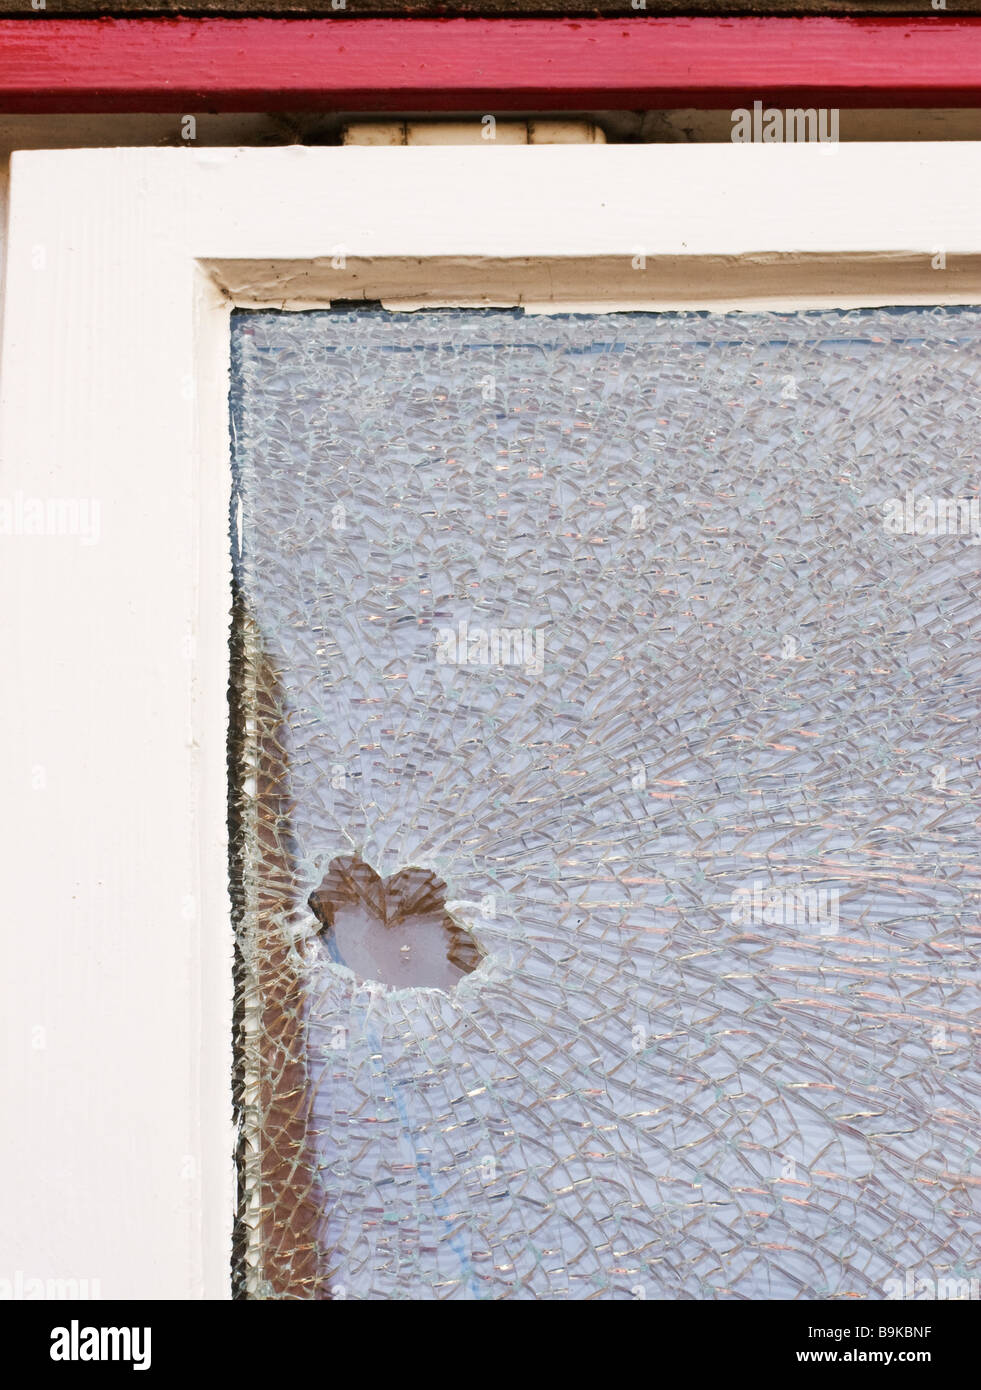 A smashed double glazed window caused by vandalism. - Stock Image